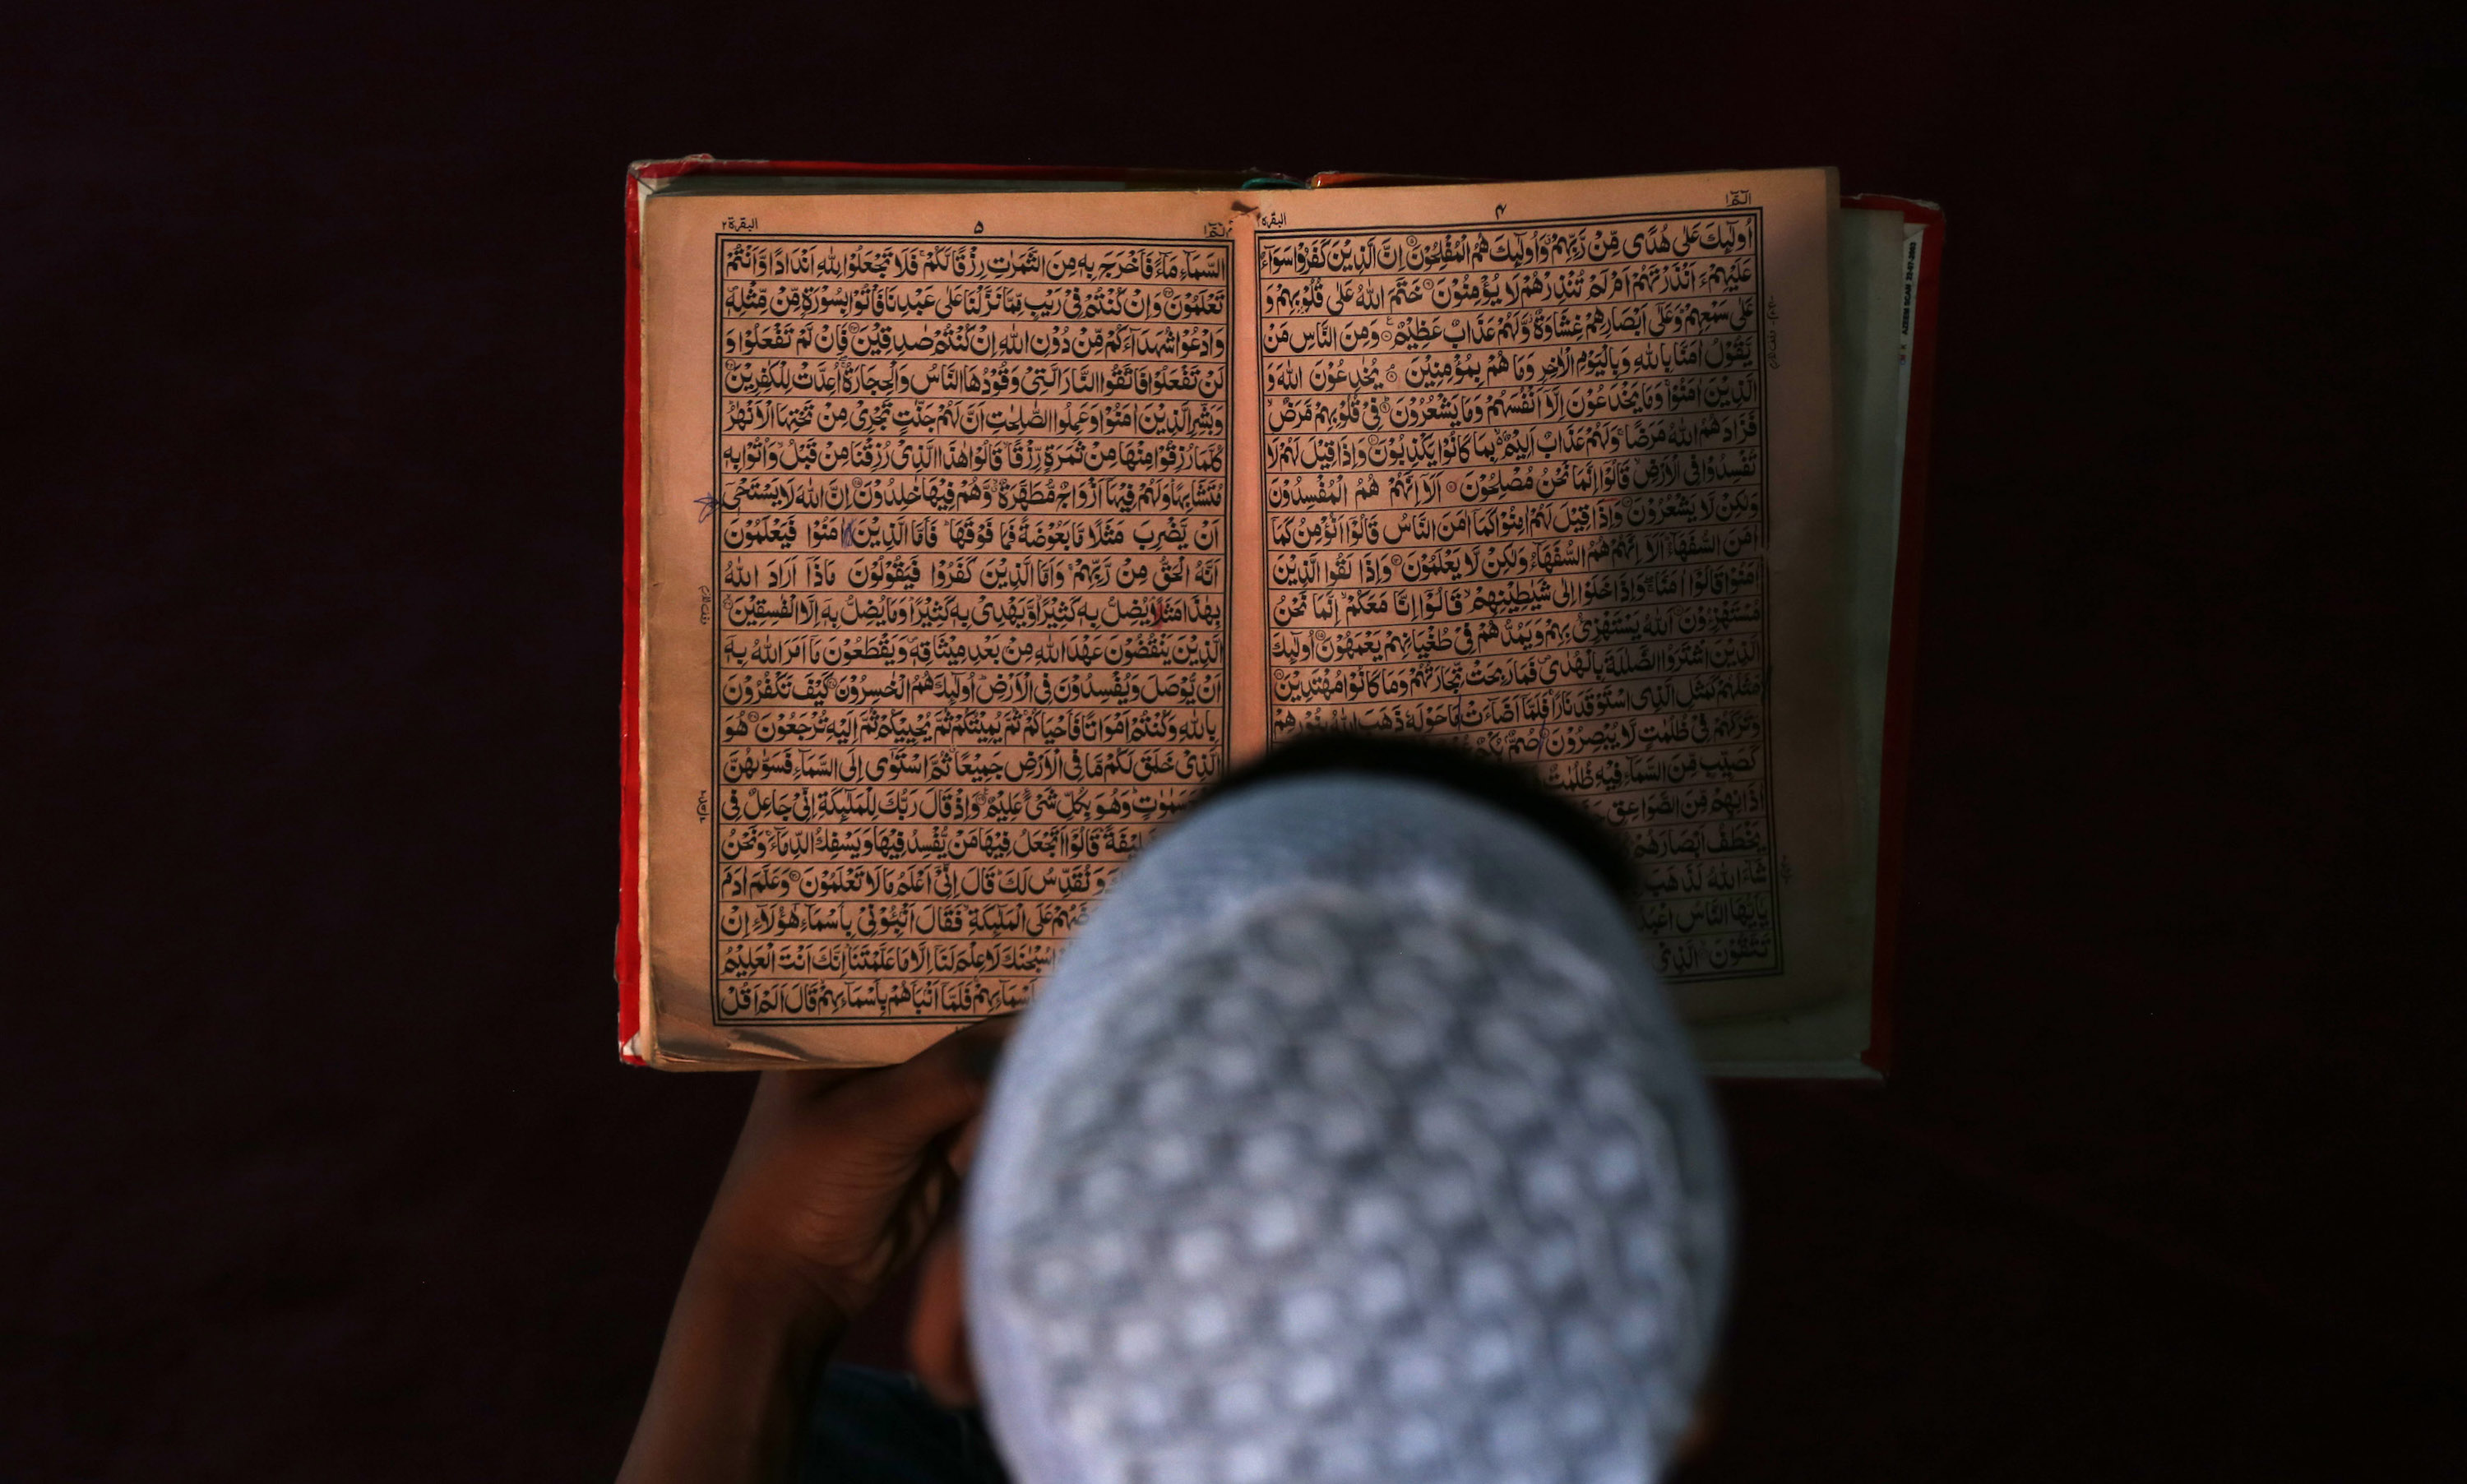 An Afghan boy reads the Koran in a madrasa, or religious school, during the Muslim holy month of Ramadan in Kabul June 30, 2014. REUTERS/Mohammad Ismail (AFGHANISTAN - Tags: RELIGION TPX IMAGES OF THE DAY EDUCATION SOCIETY) - RTR3WGFF